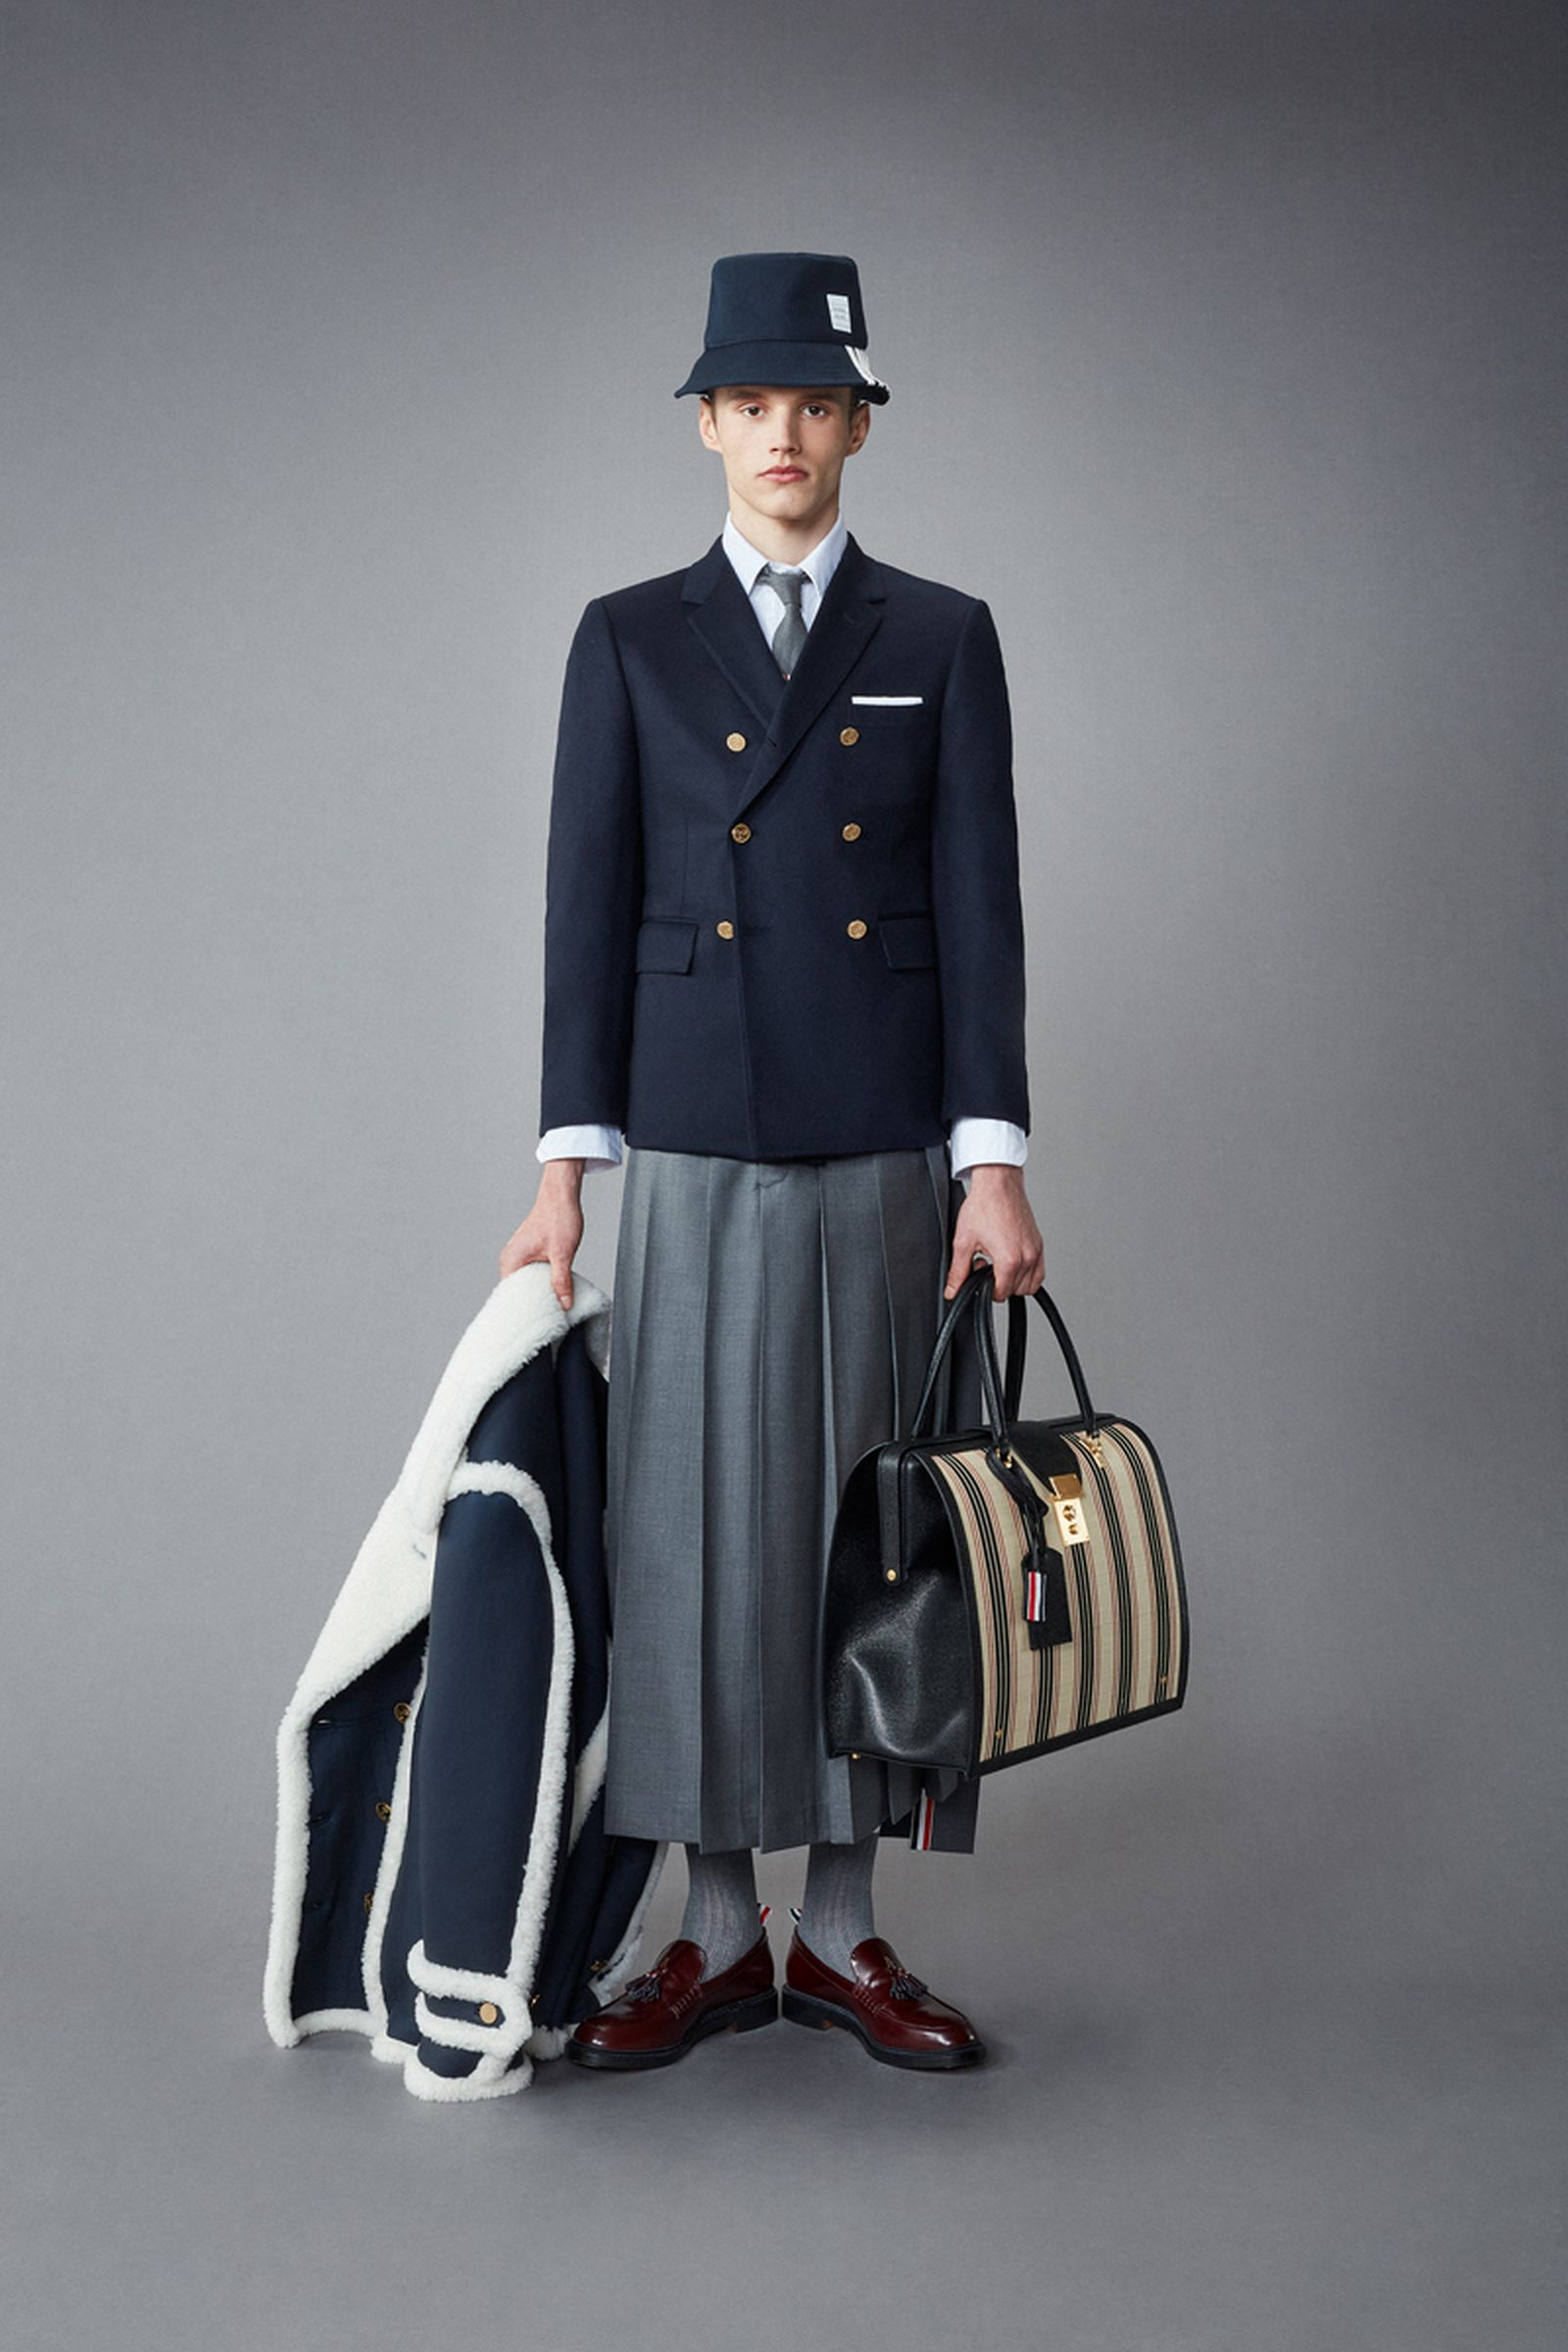 thom-browne-resort-2022-collection- (20)